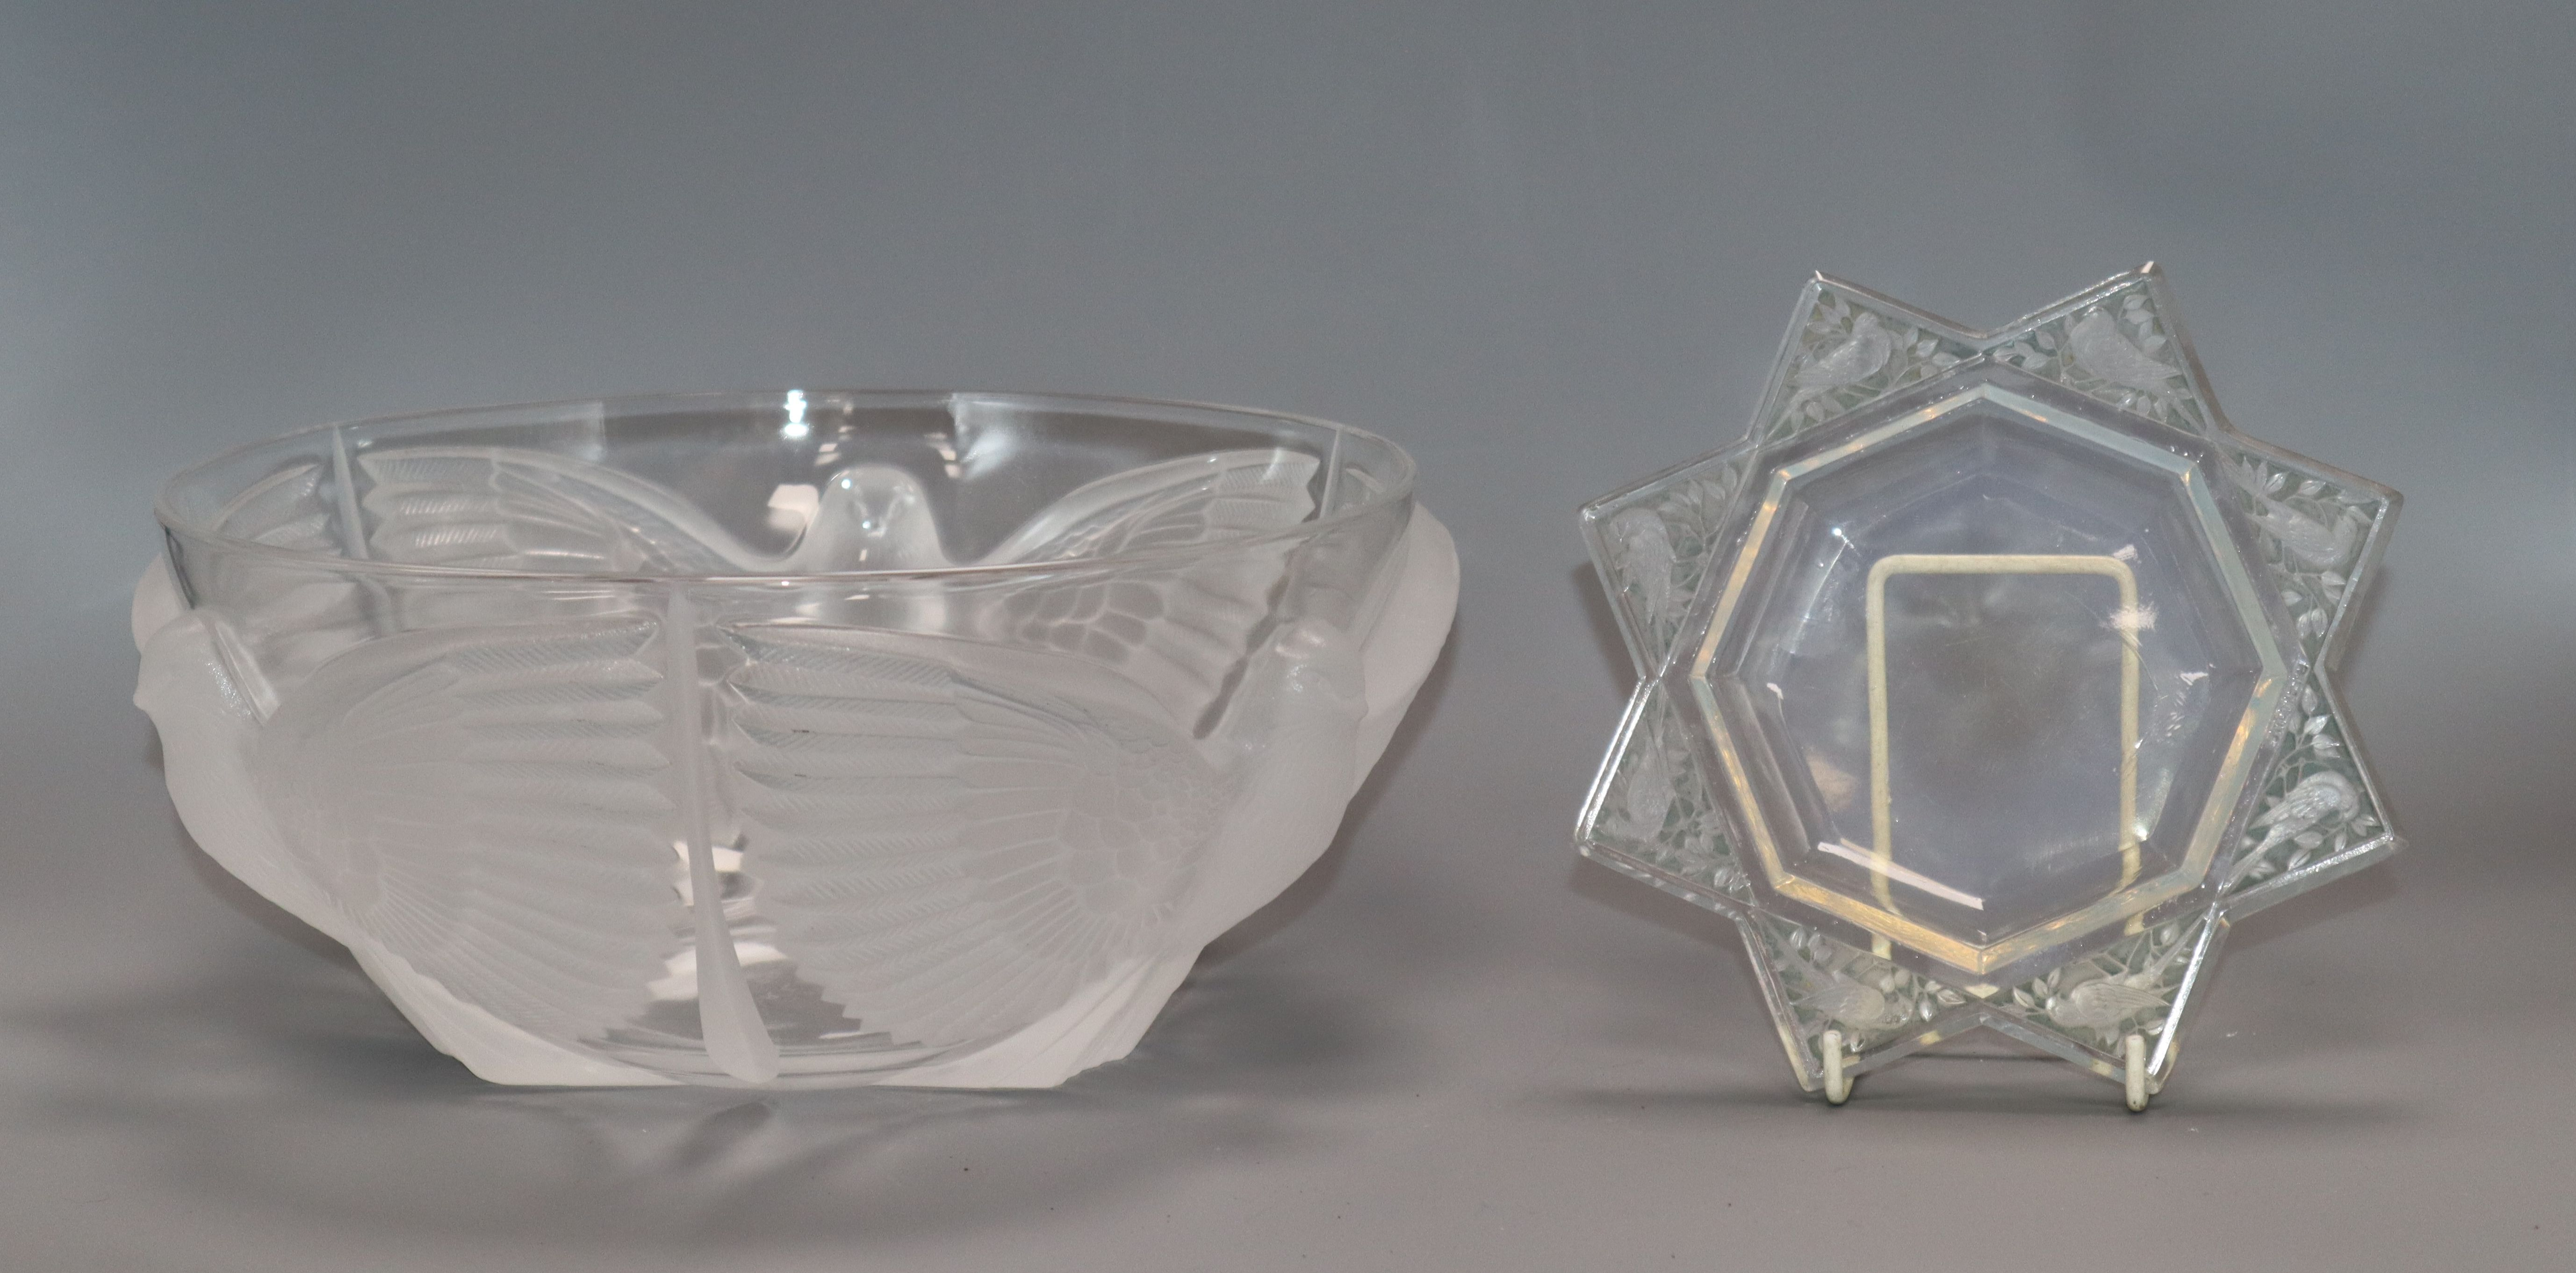 Lot 11 - An R. Lalique 'Fauvettes' cendrier etched with birds and a French pressed glass bowl moulded with